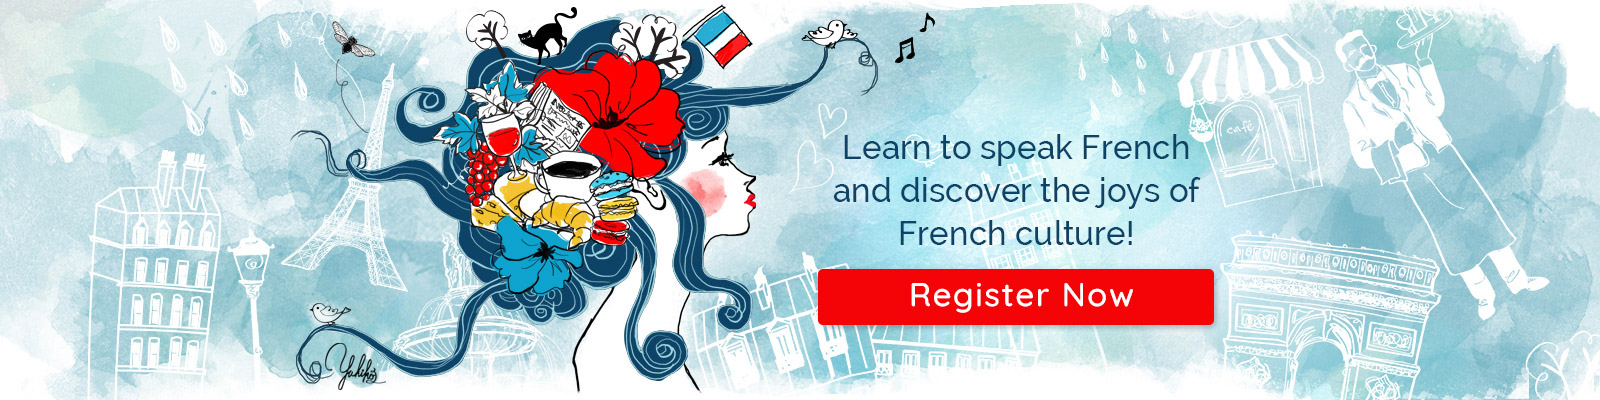 Learn to speak French at La Petite Ecole Française, Pasadena